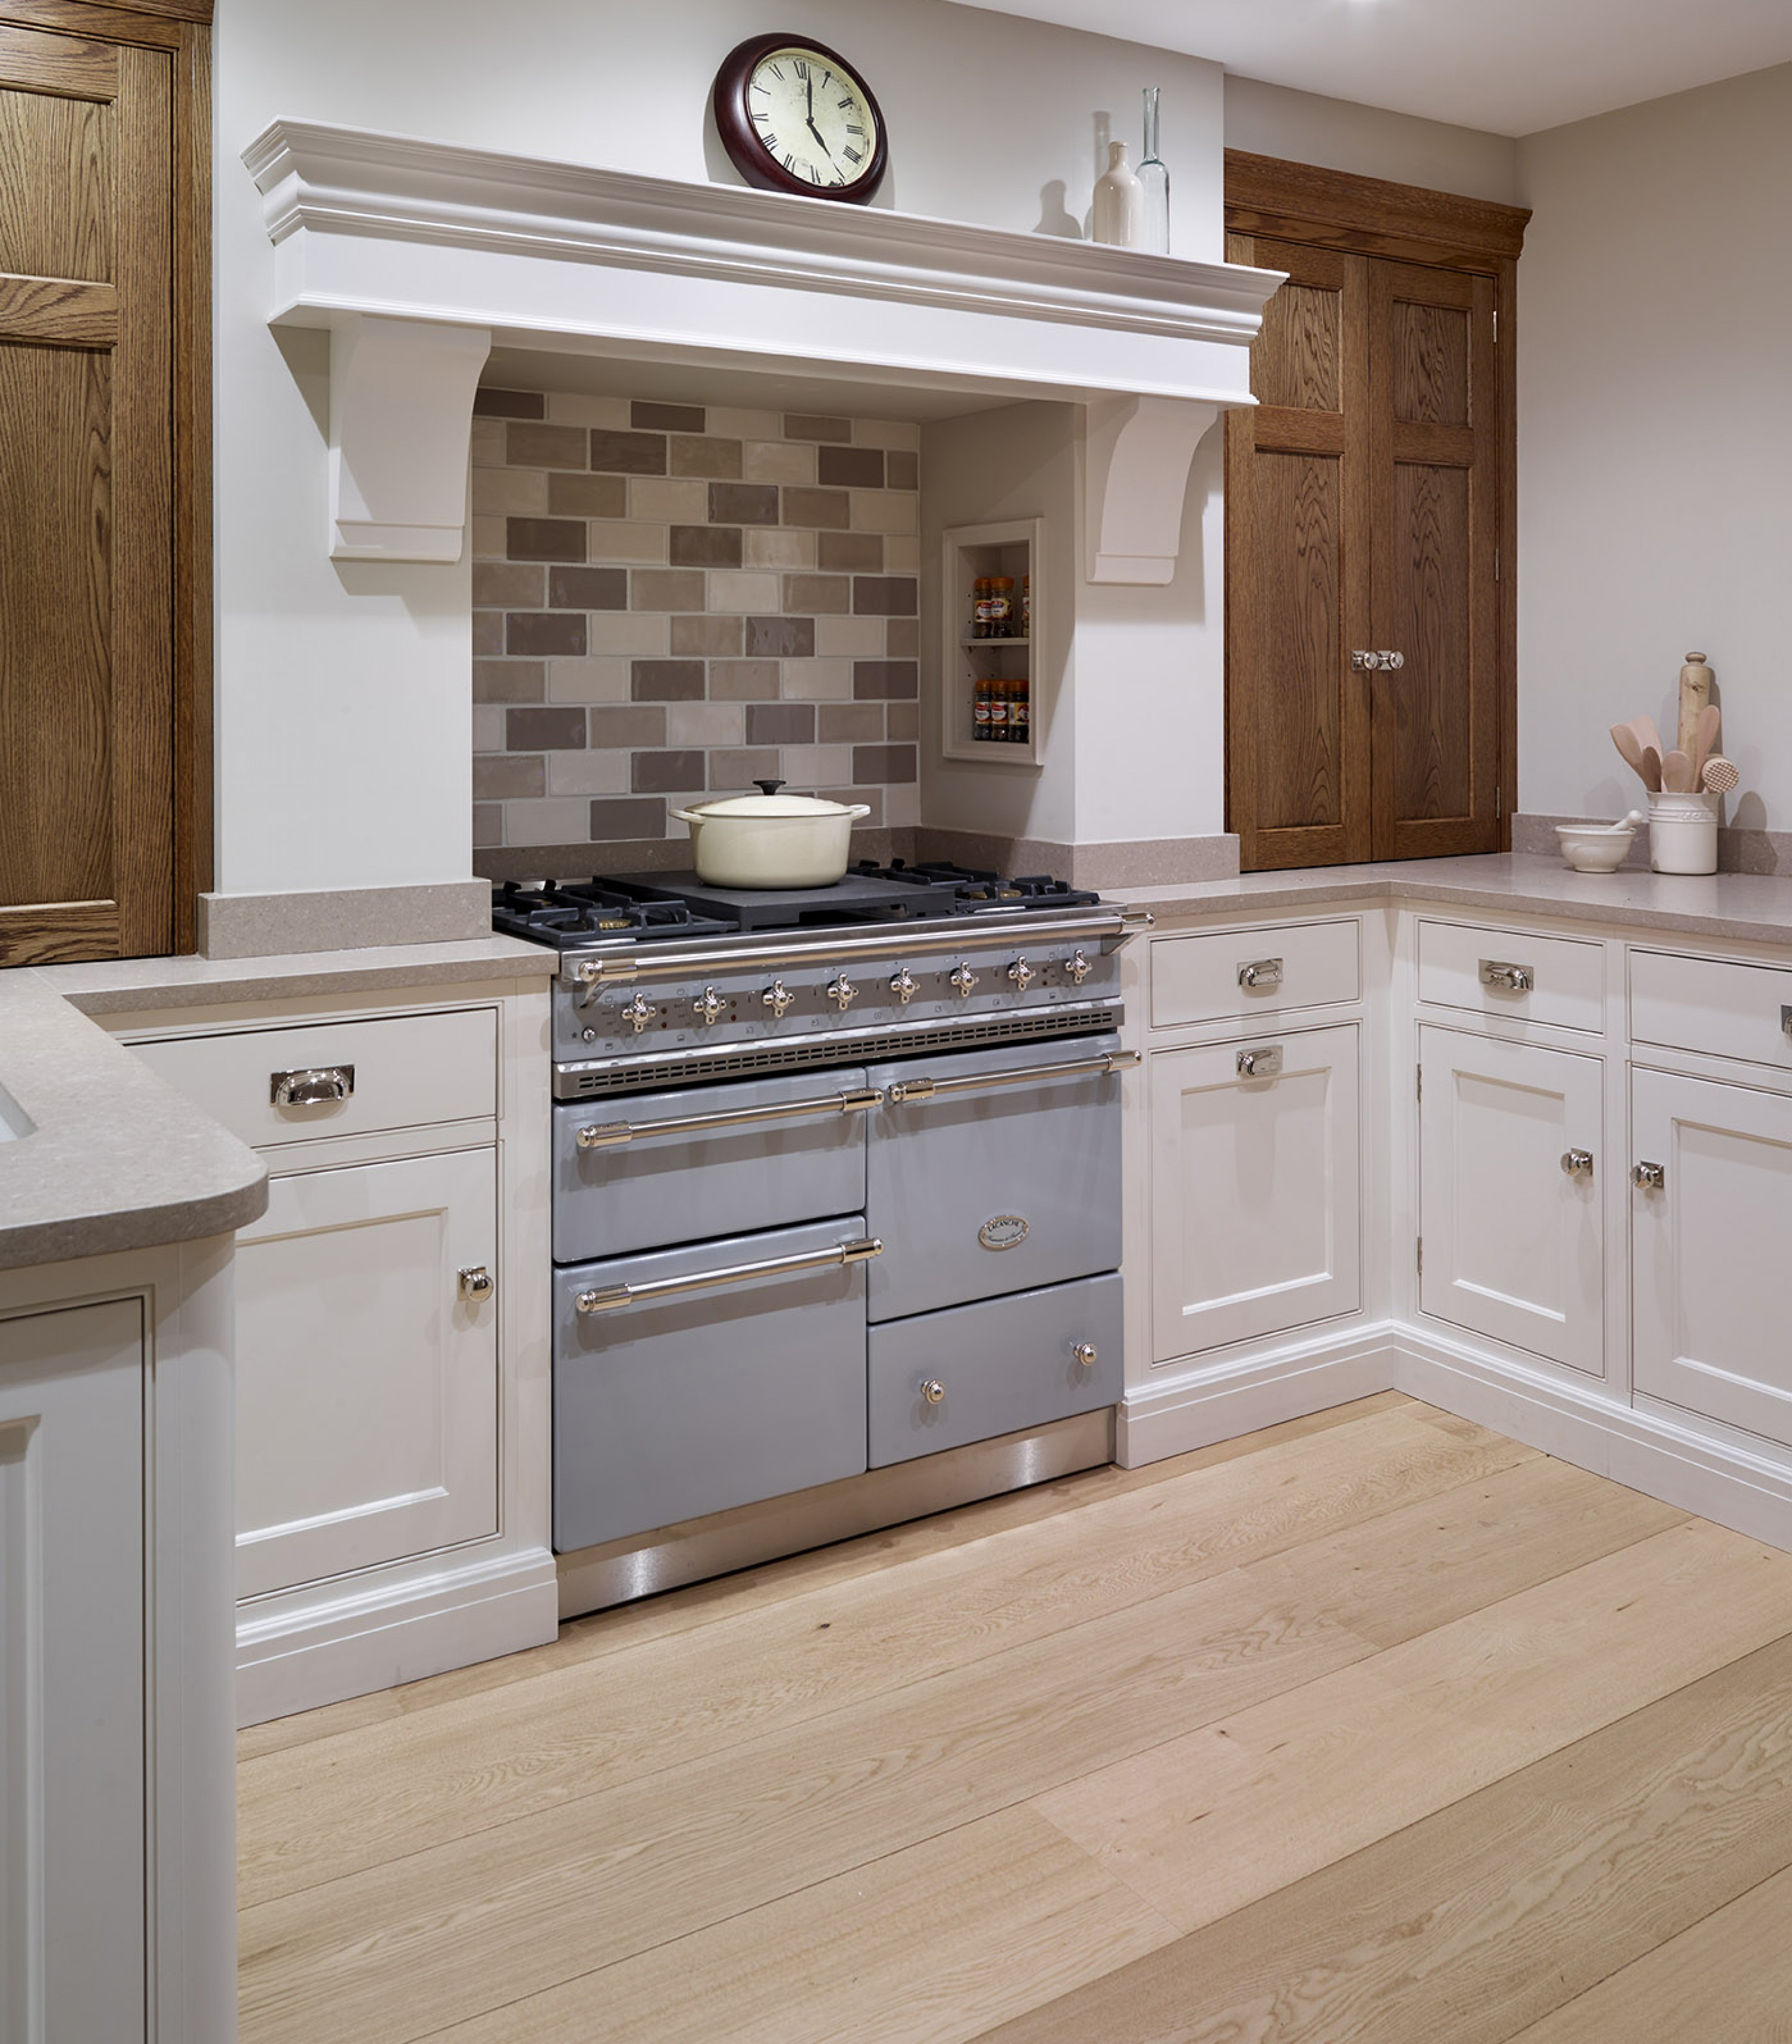 Price Of New Kitchen Uk